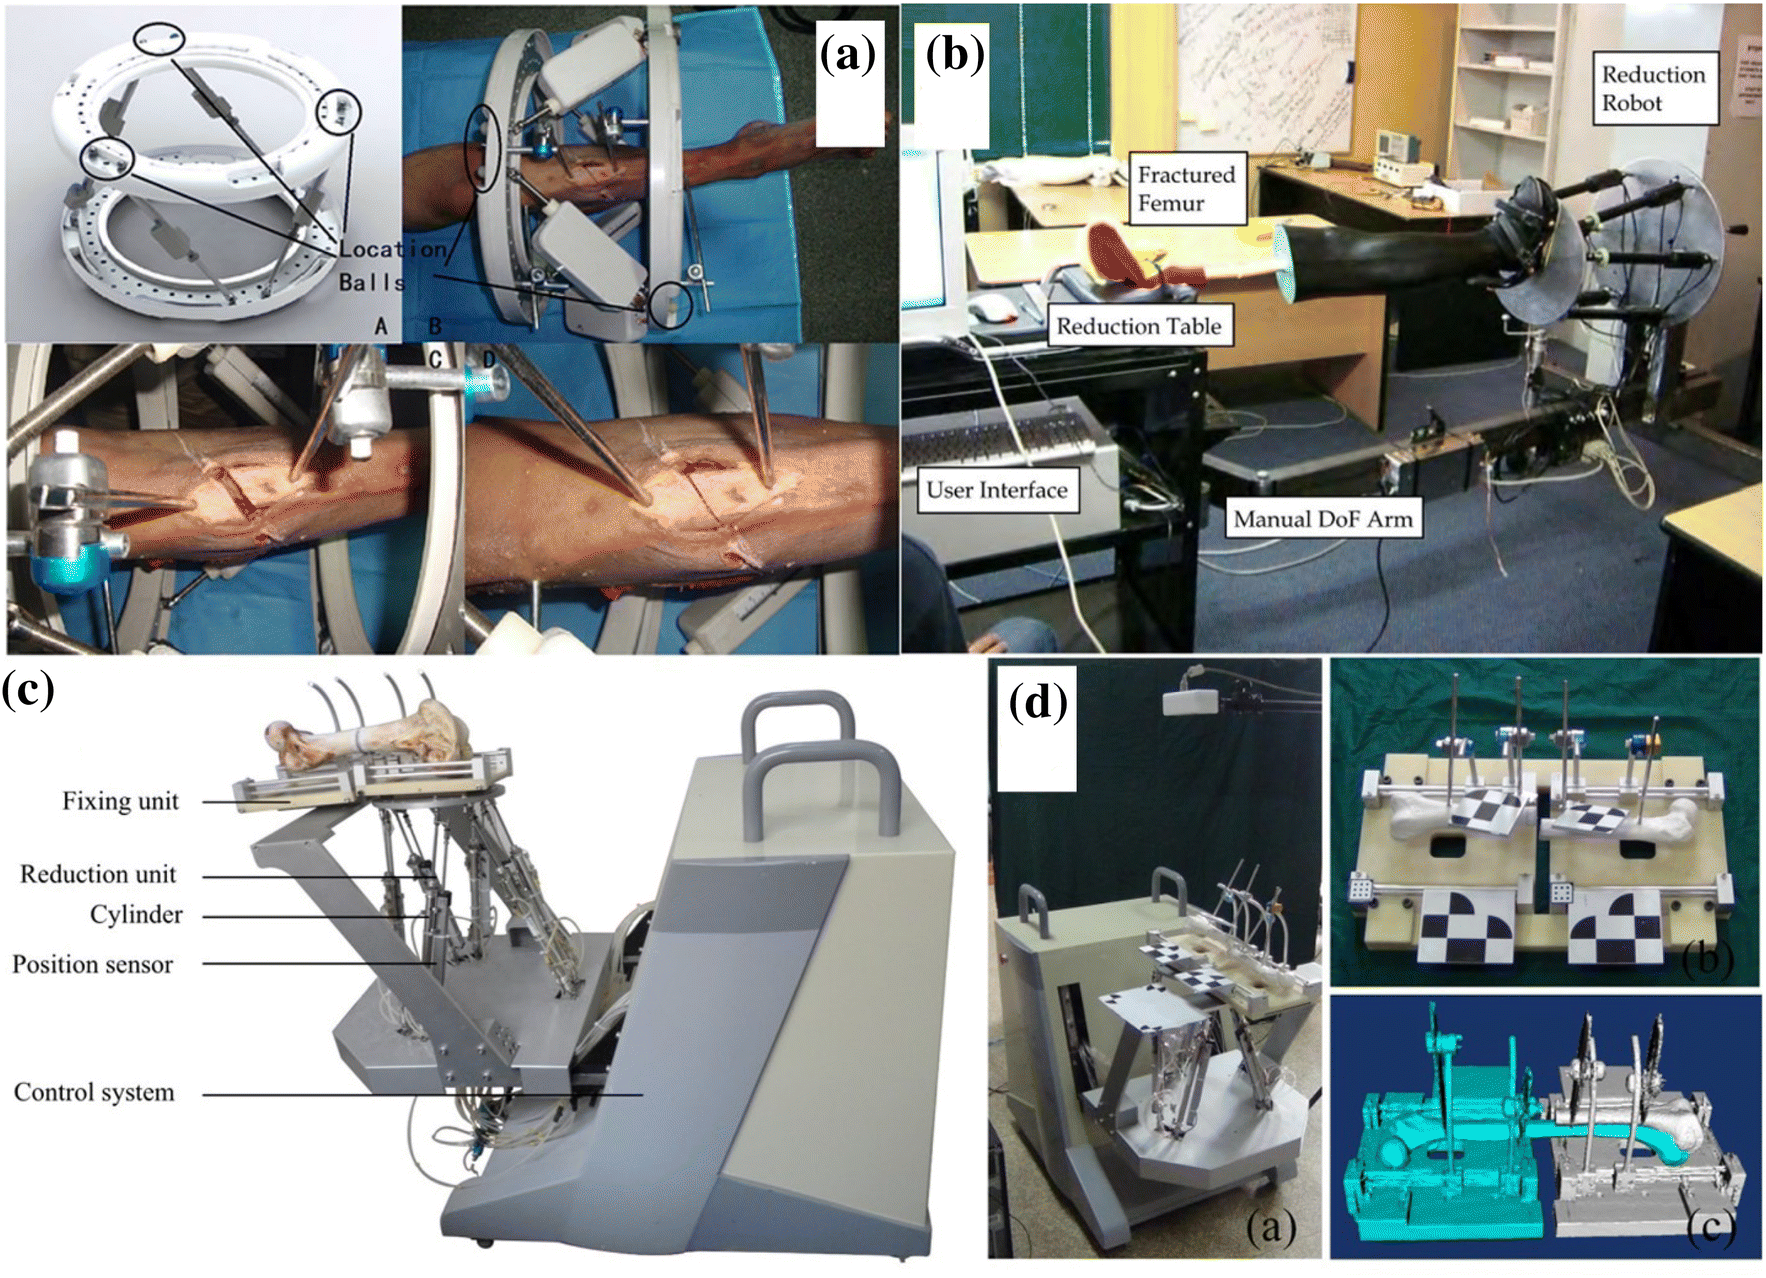 Evolution and Current Applications of Robot-Assisted Fracture